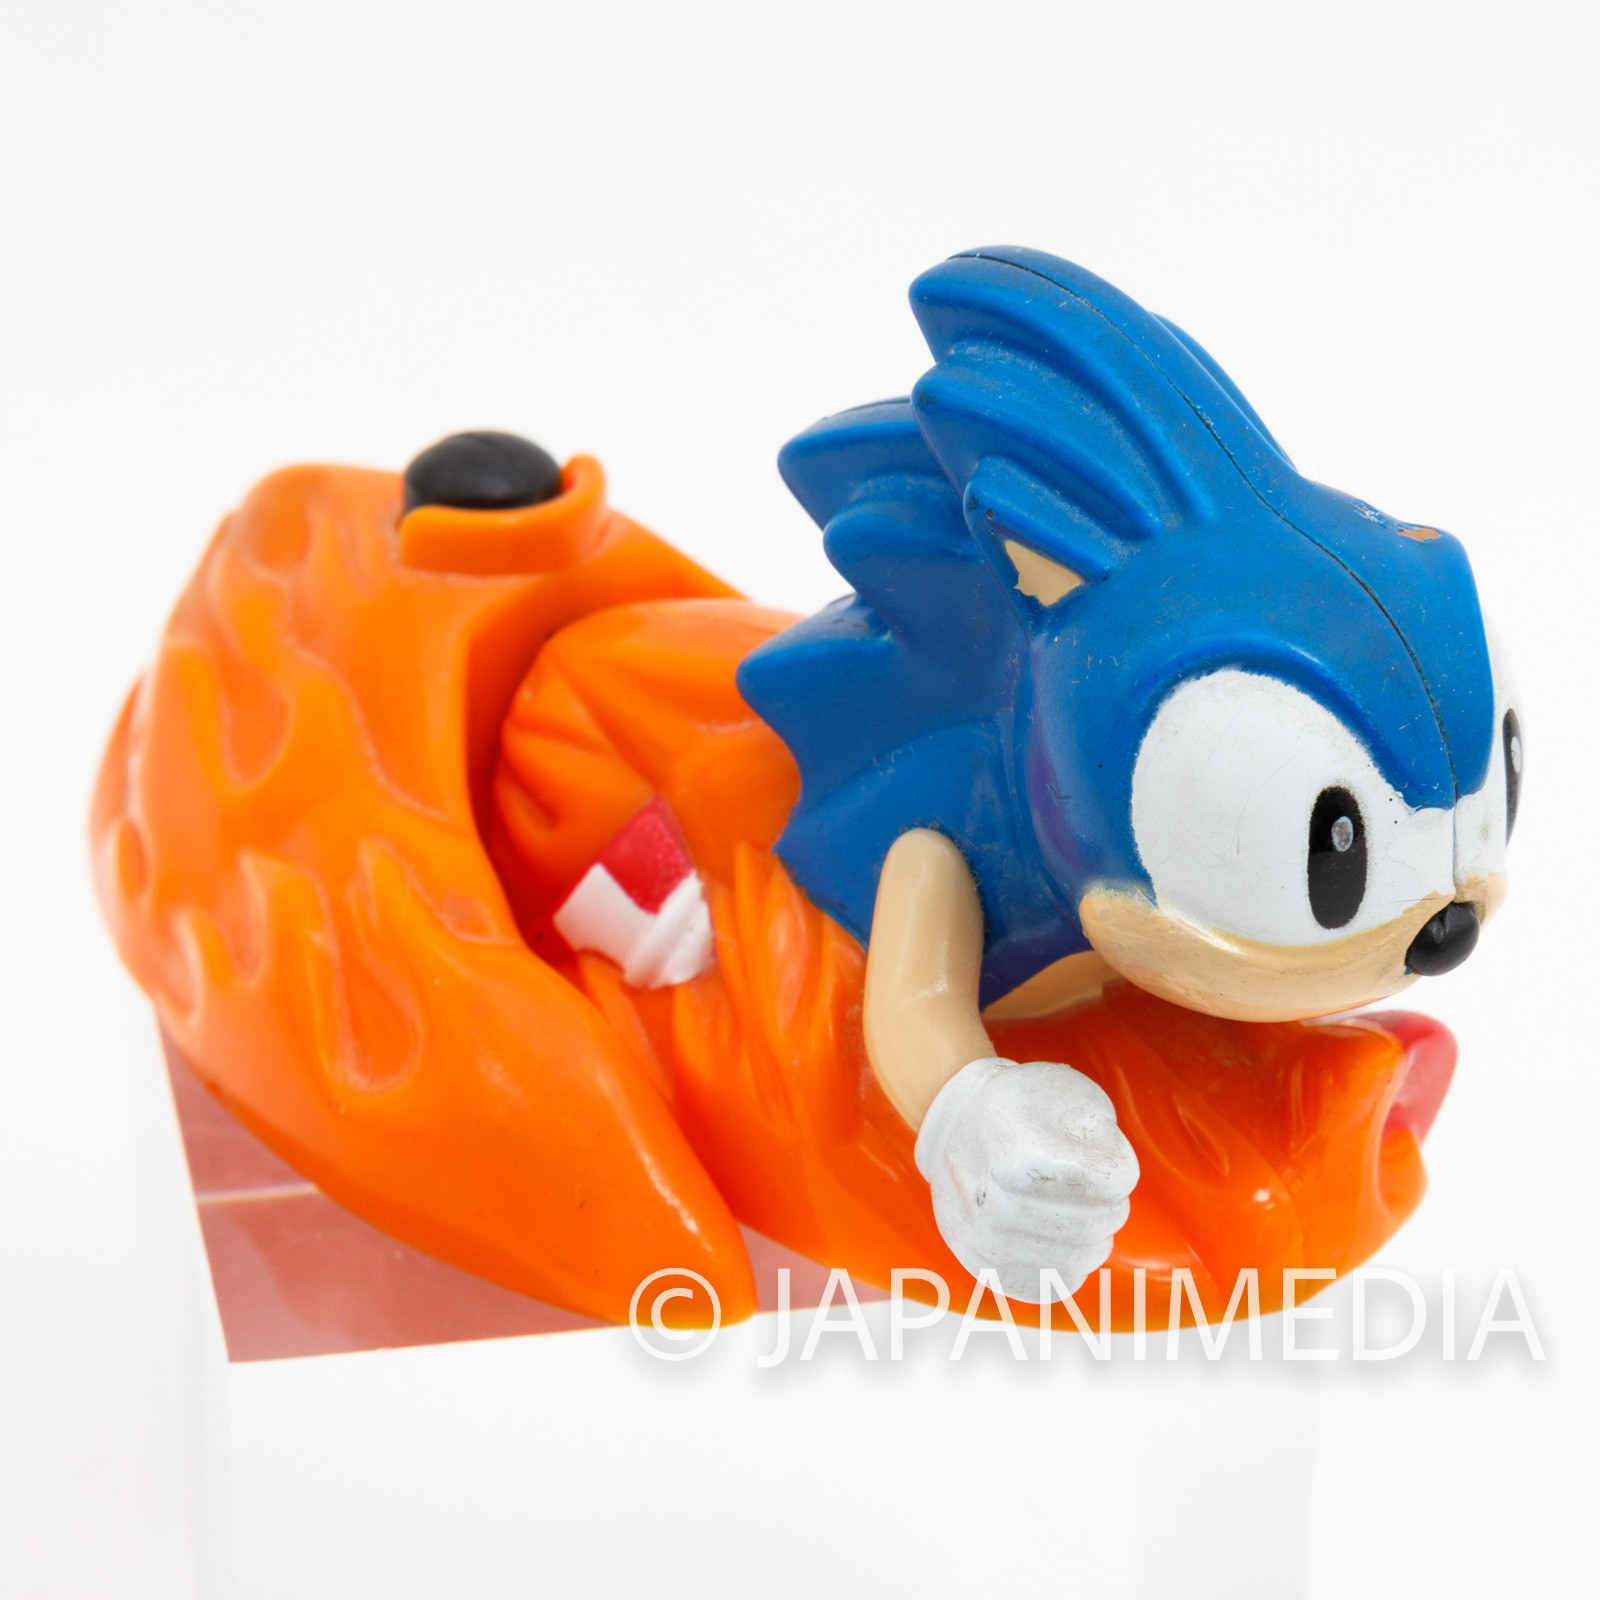 Sonic The Hedgehog Figure Louncher